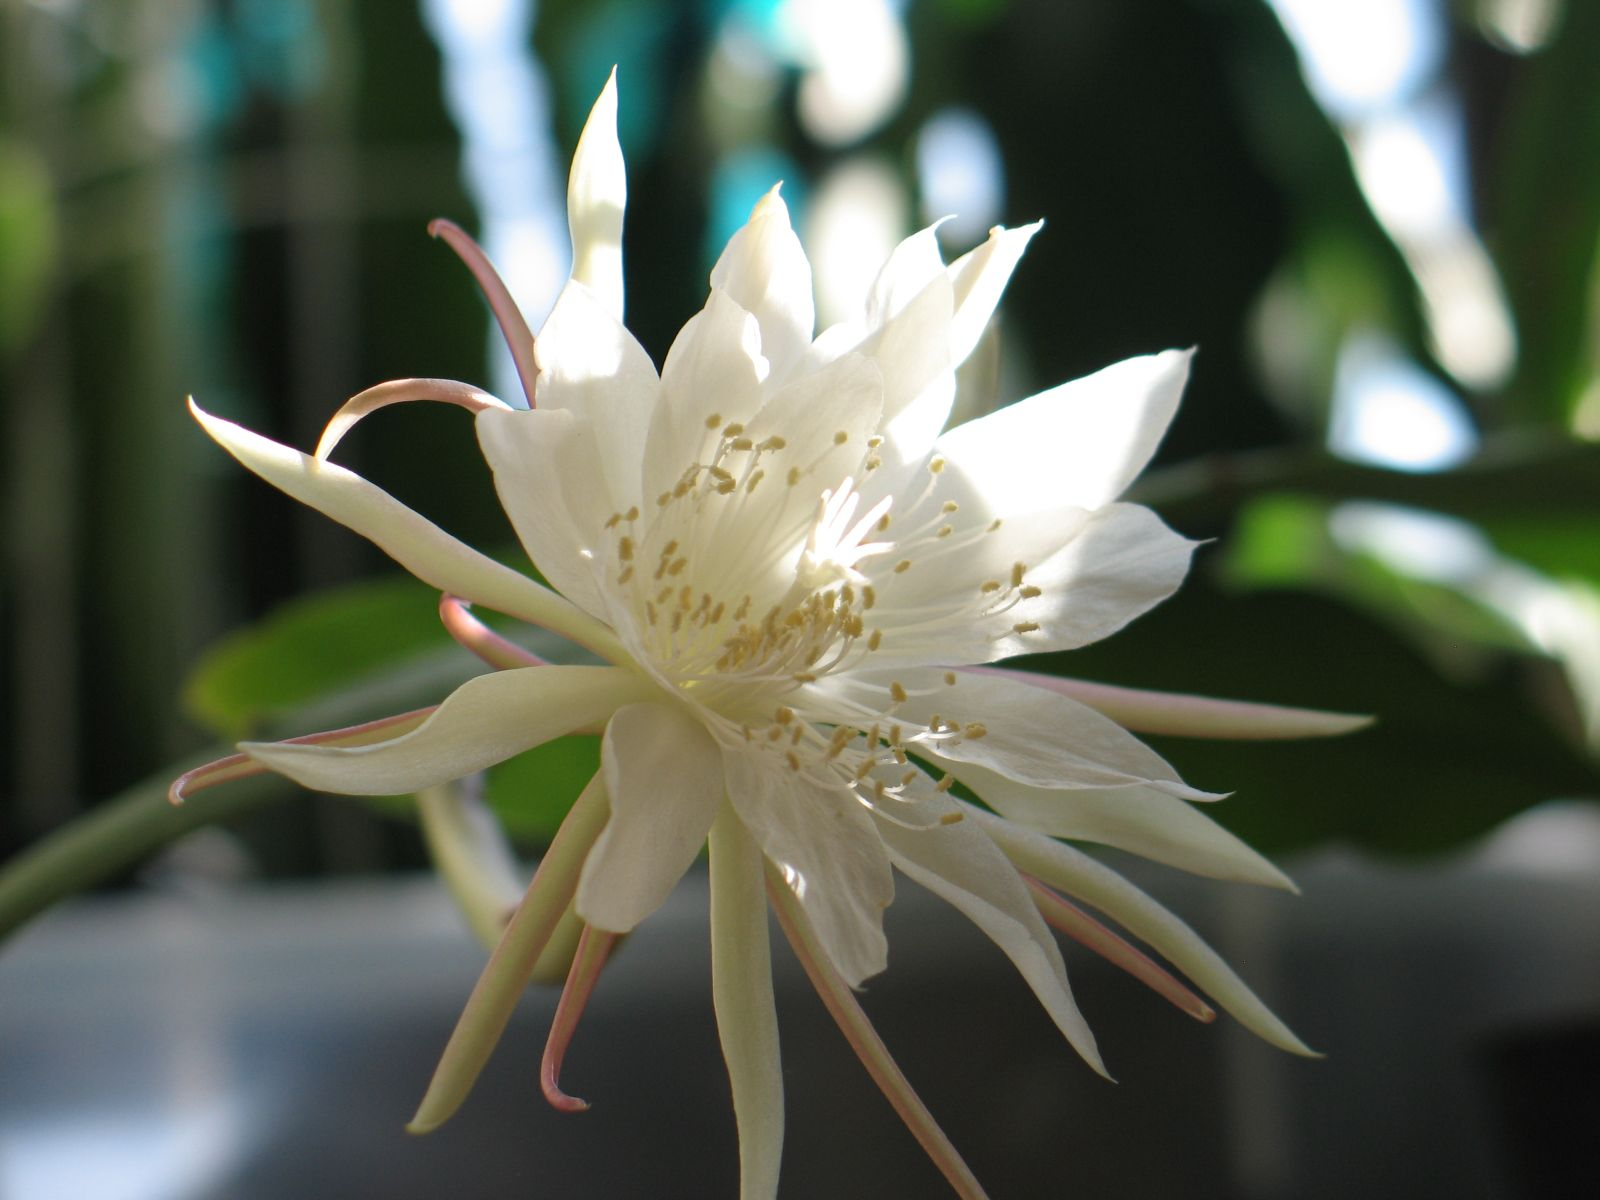 http://upload.wikimedia.org/wikipedia/commons/5/57/Epiphyllum_pumilum286970600.jpg